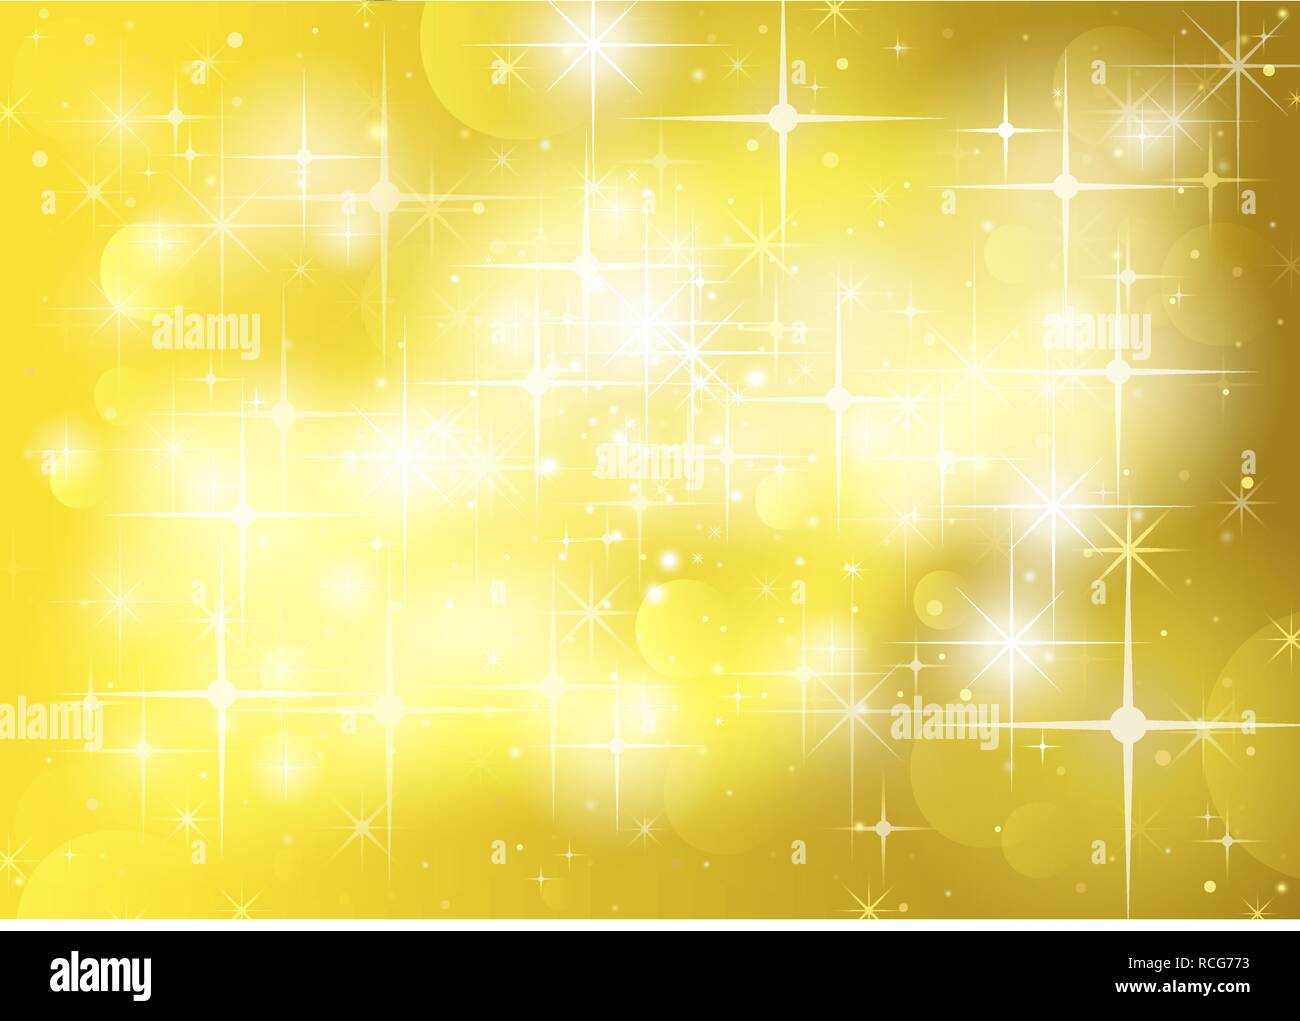 Stars and Sparklers Background - Stock Vector